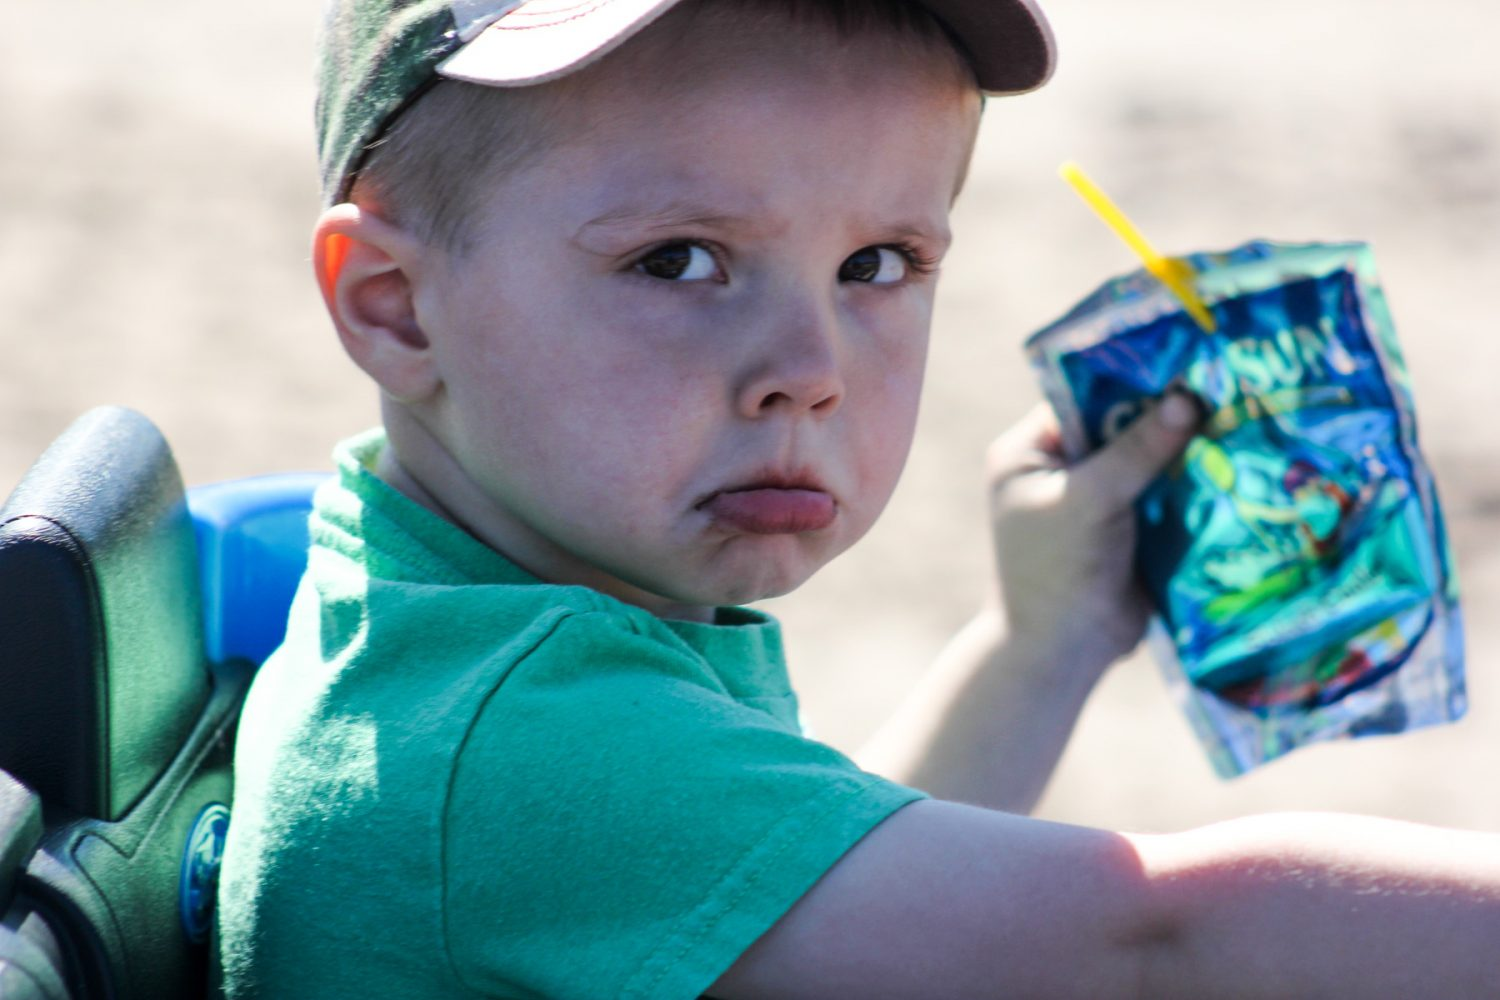 3-year-old Wayne of Meridian, Fla. pouts as he is pushed through Hog Waller on his kid-sized toy Jeep on Sunday afternoon, March 2, 2014. Wayne was upset because the batteries on his Jeep died, and he was unable to drive himself throughout the park.